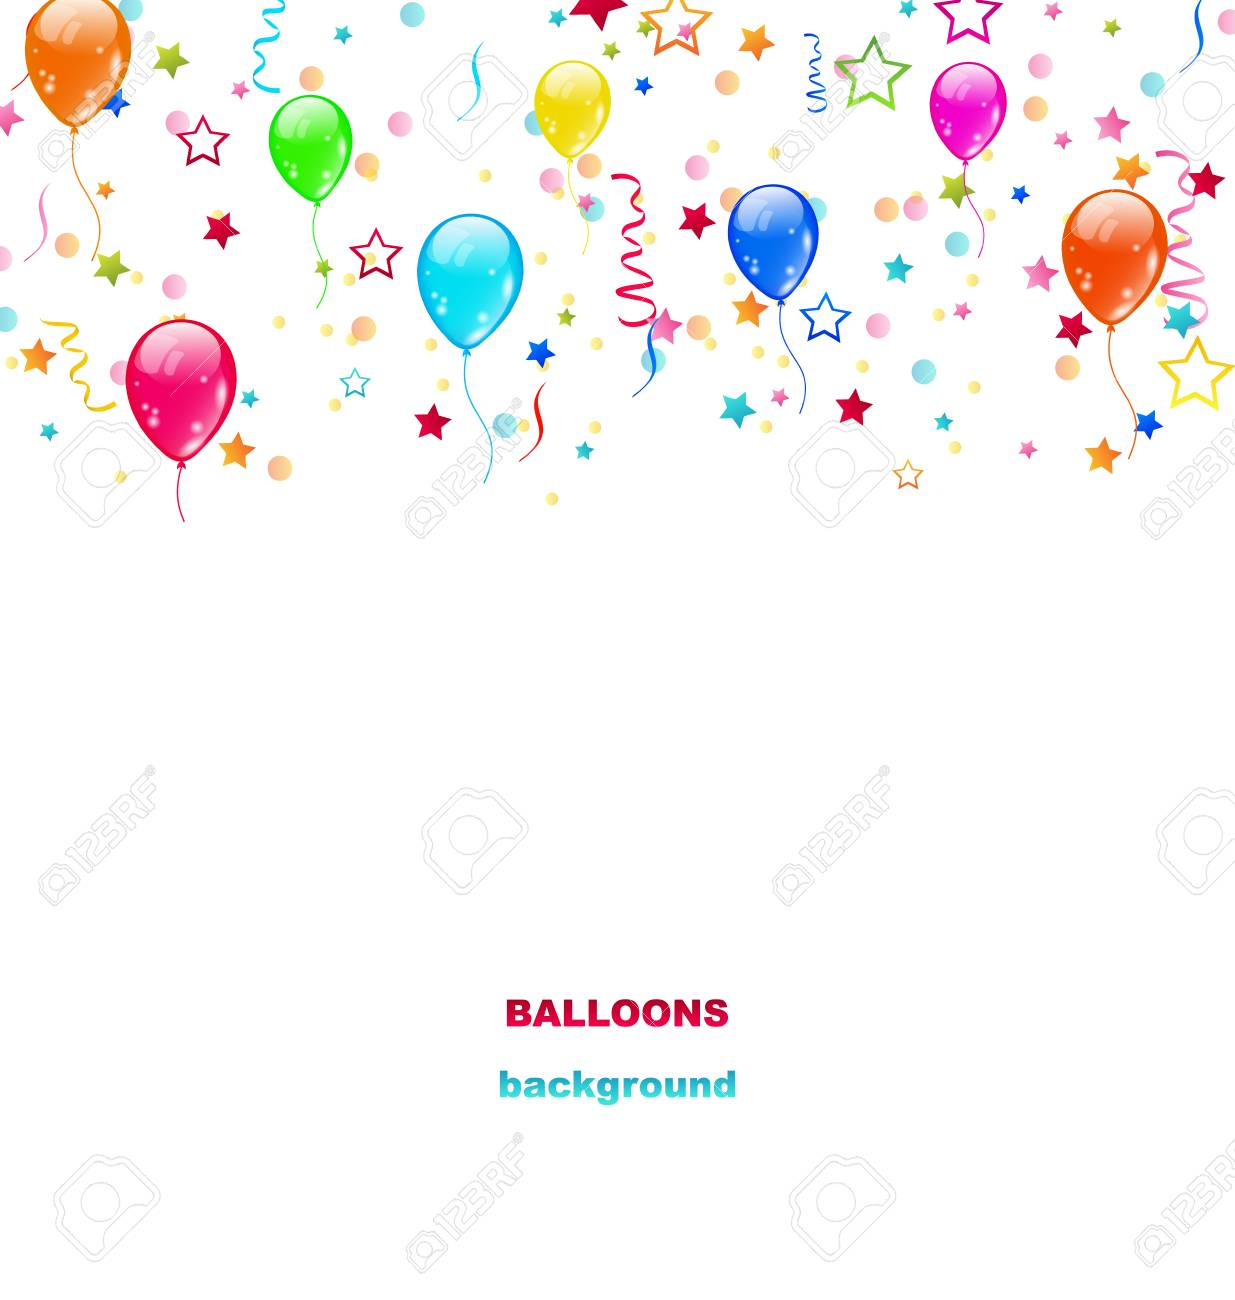 Illustration Party Colorful Balloons, Confetti for Happy Birthday...